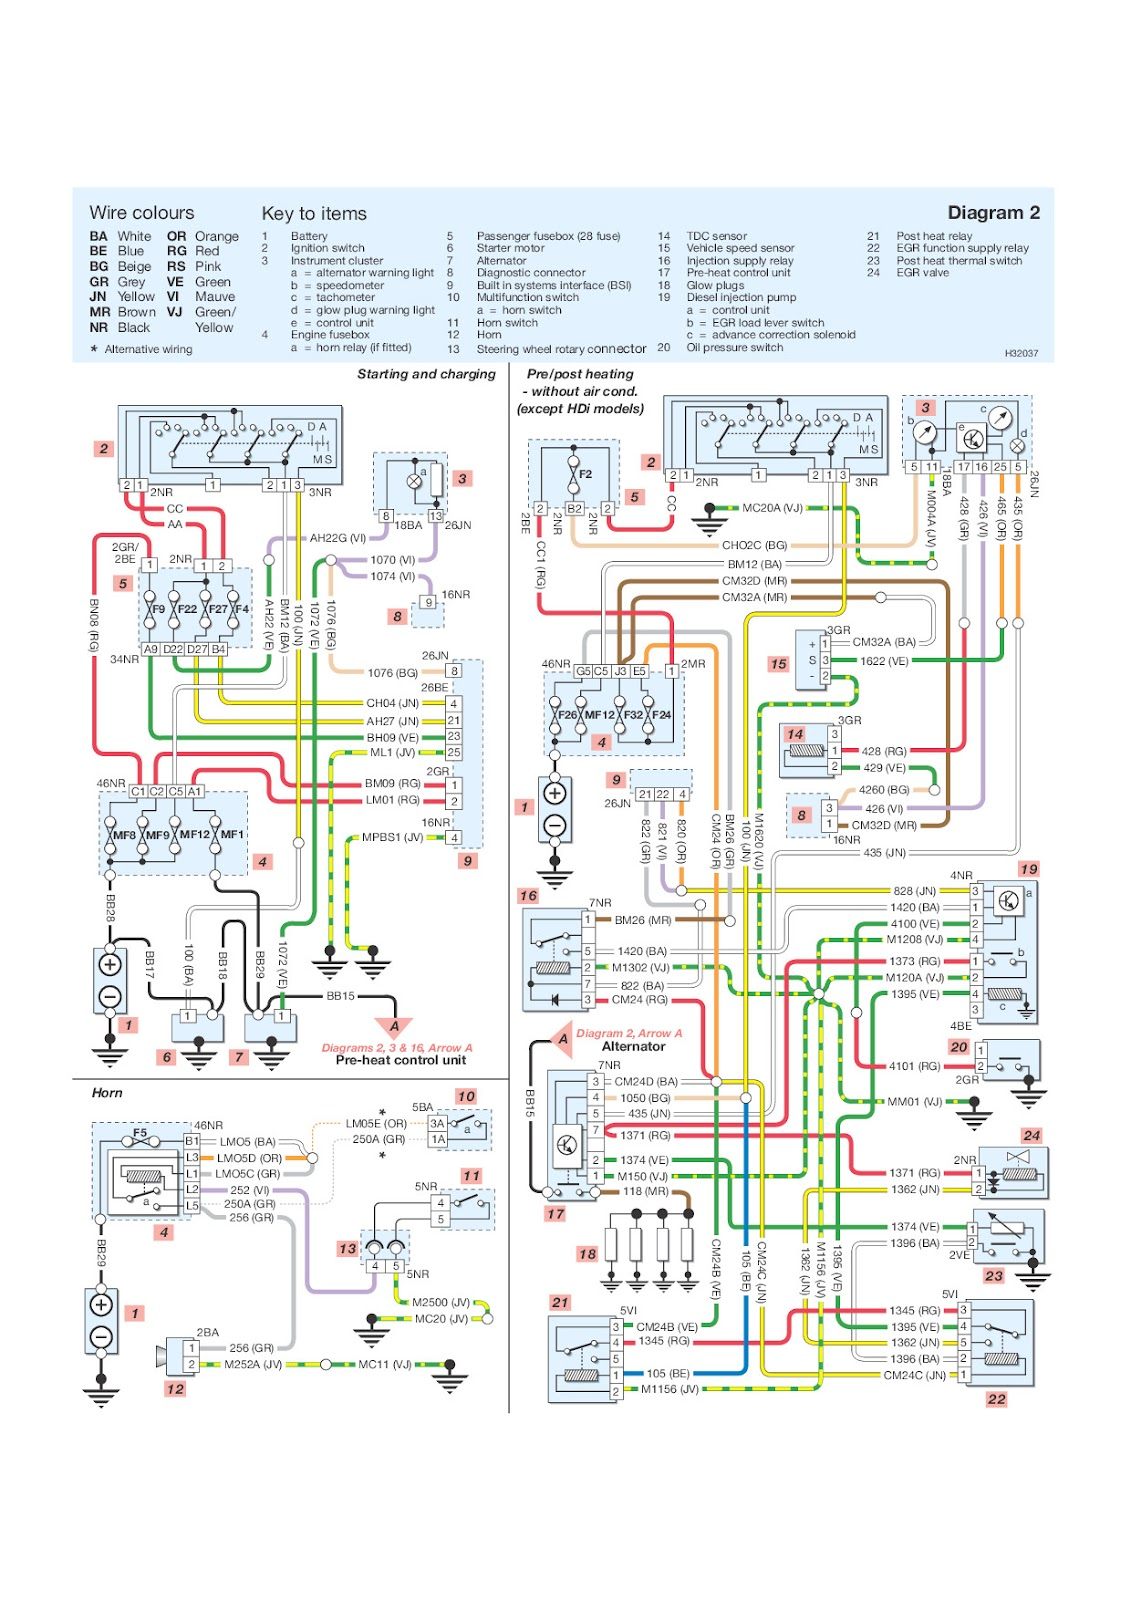 your wiring diagrams source peugeot 206 starting charging horn wiring diagrams source peugeot 206 pre post heating engine cooling [ 1131 x 1600 Pixel ]